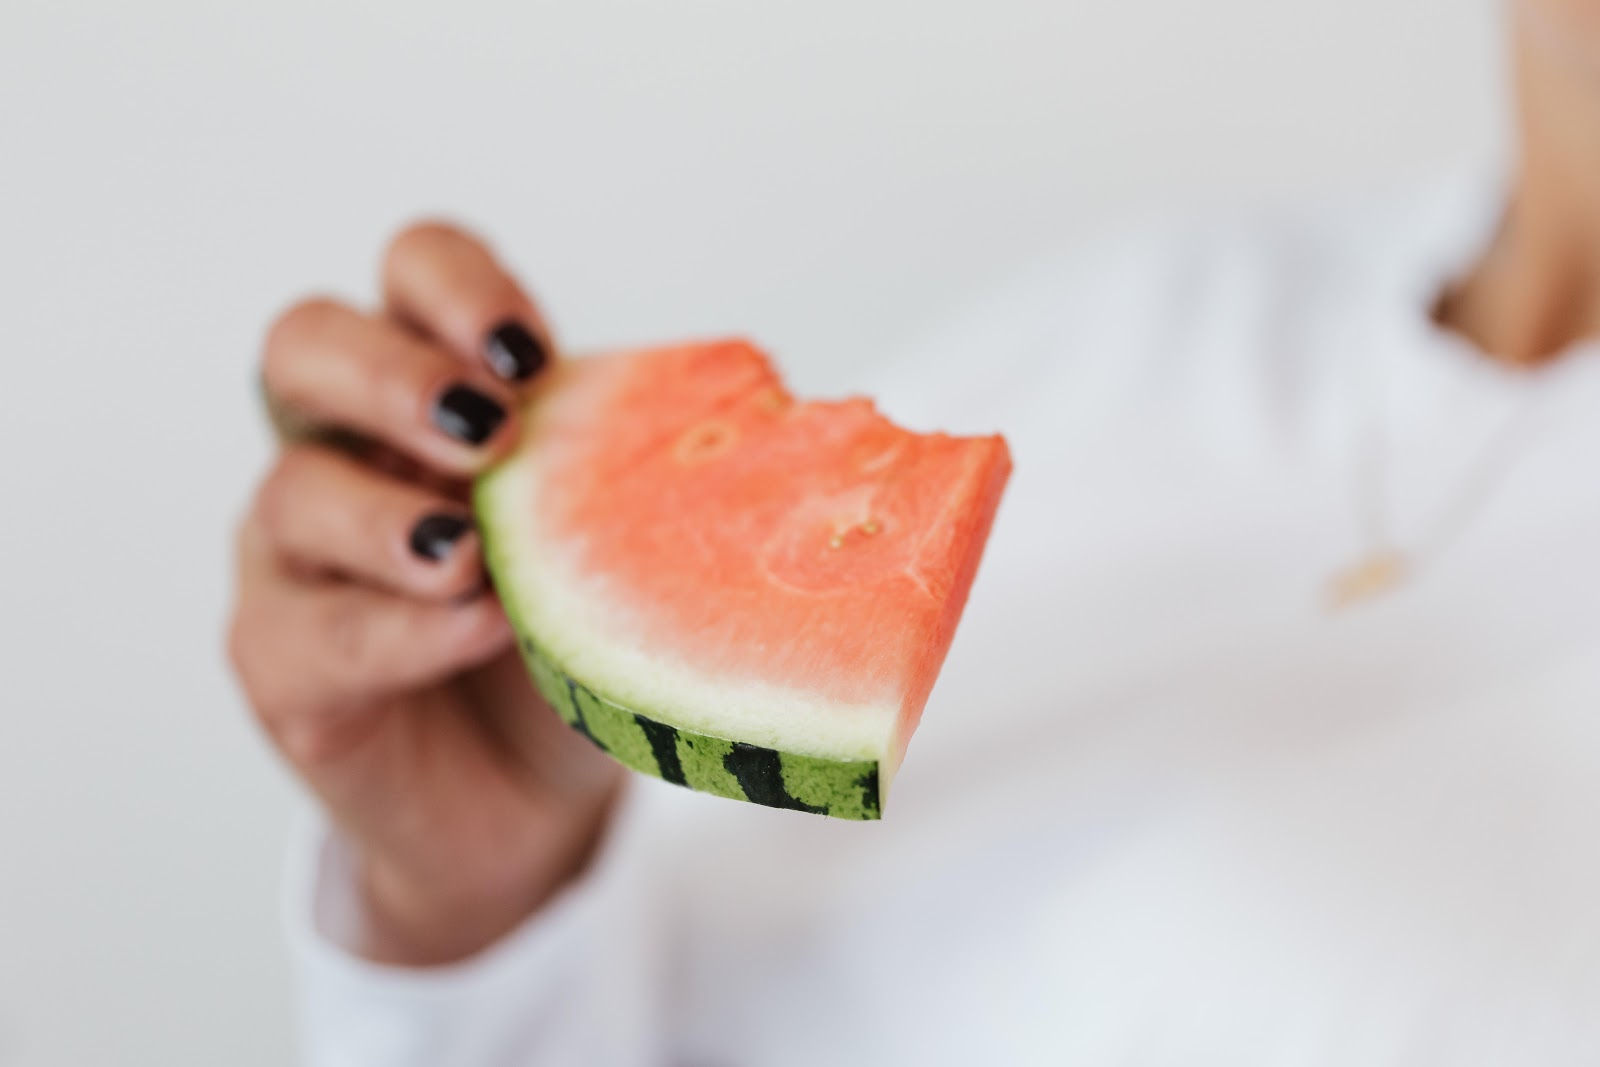 woman eating piece of watermelon